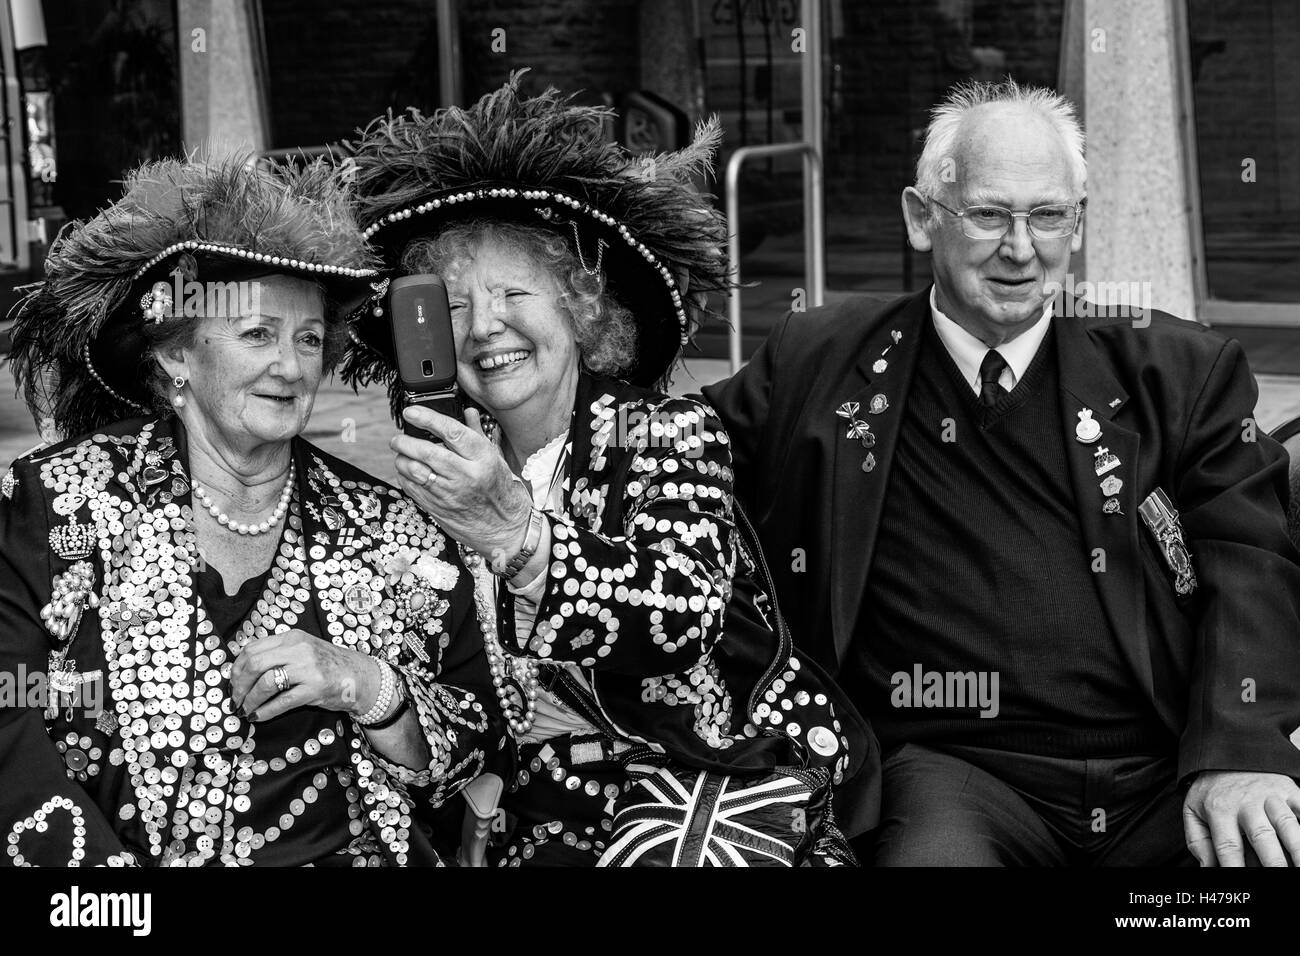 Two Pearly Queens Pose For A Selfie At The Pearly Kings and Queens' Harvest Festival, The Guildhall Yard, London, - Stock Image